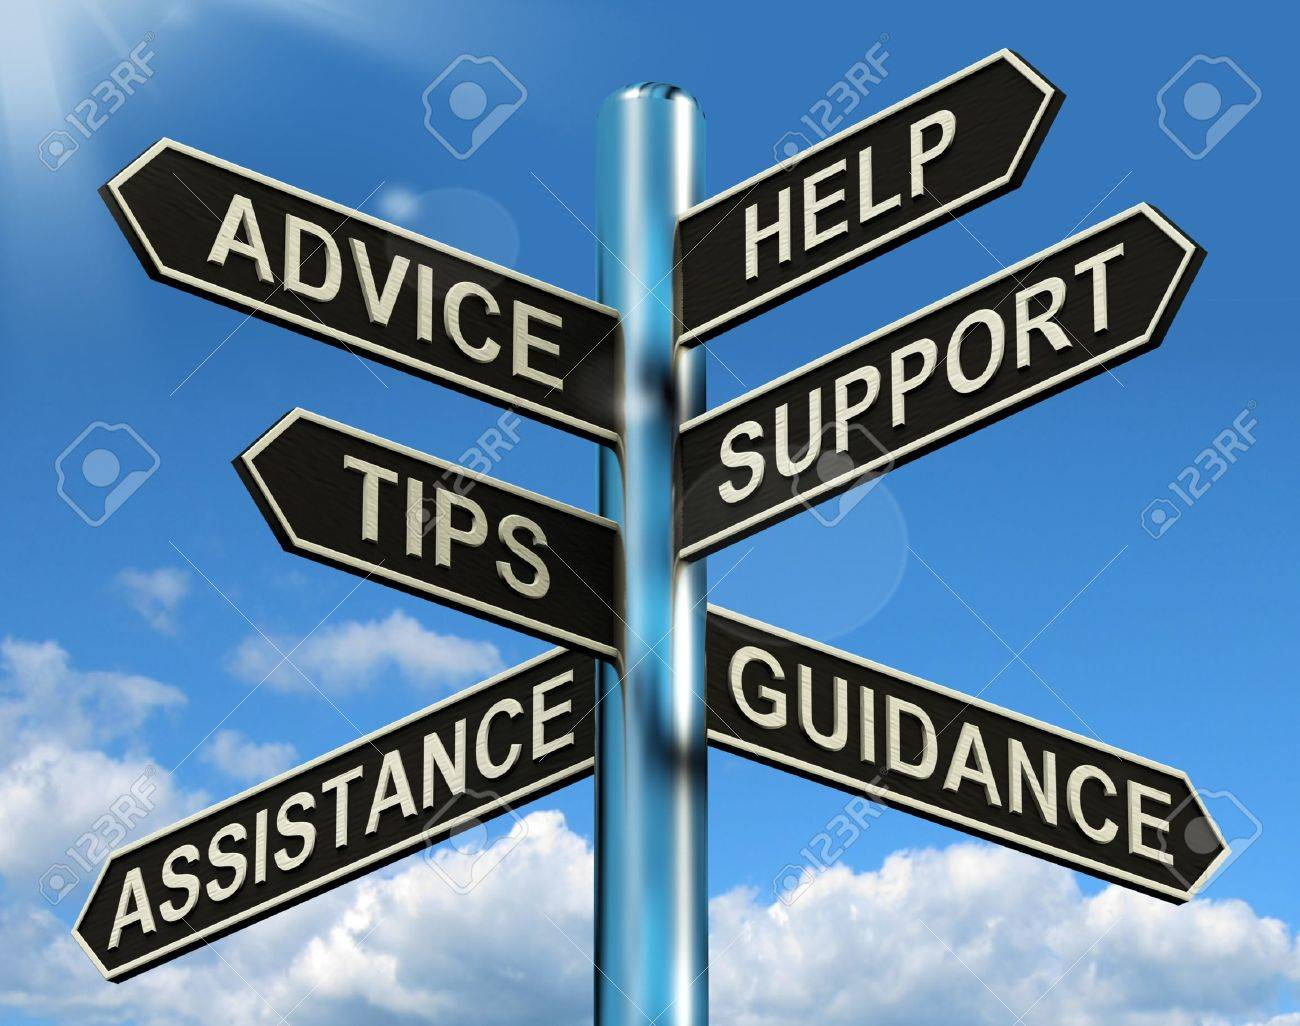 Advice Help Support And Tips Signpost Shows Information And Guidance - 13564616